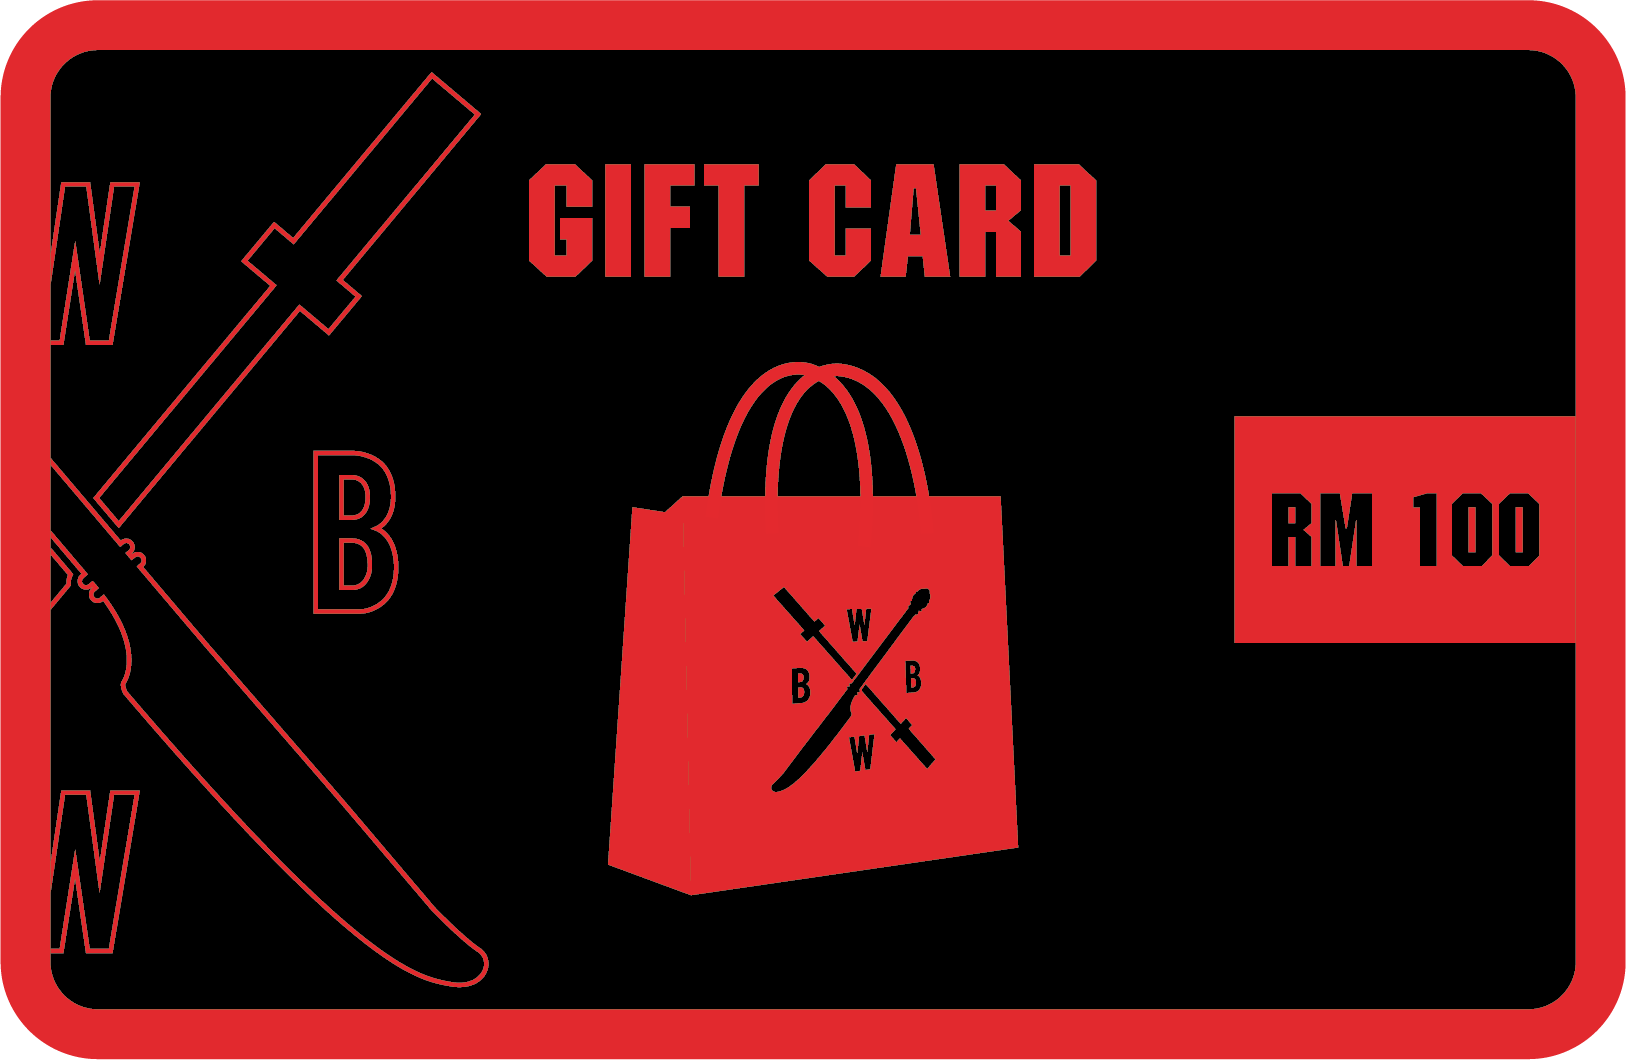 Gift Card RM100 - Outline Thick.png